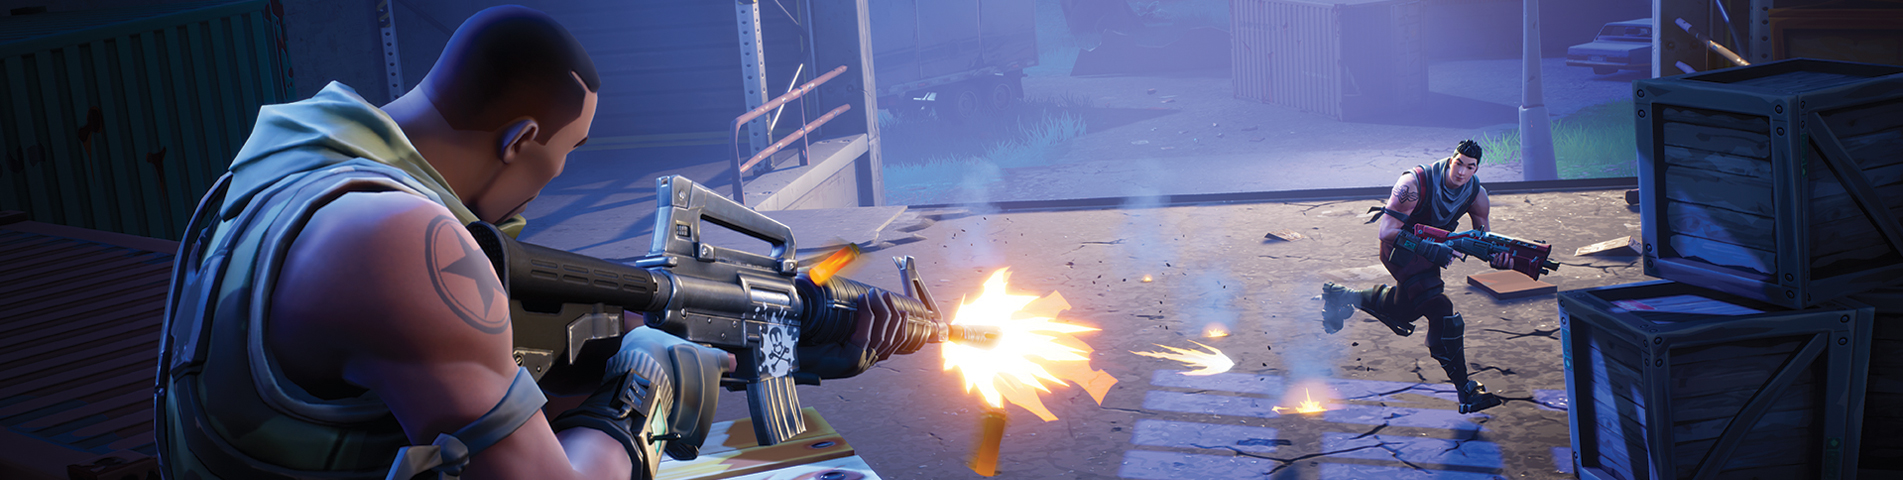 fortnite battle royale download pc highly compressed